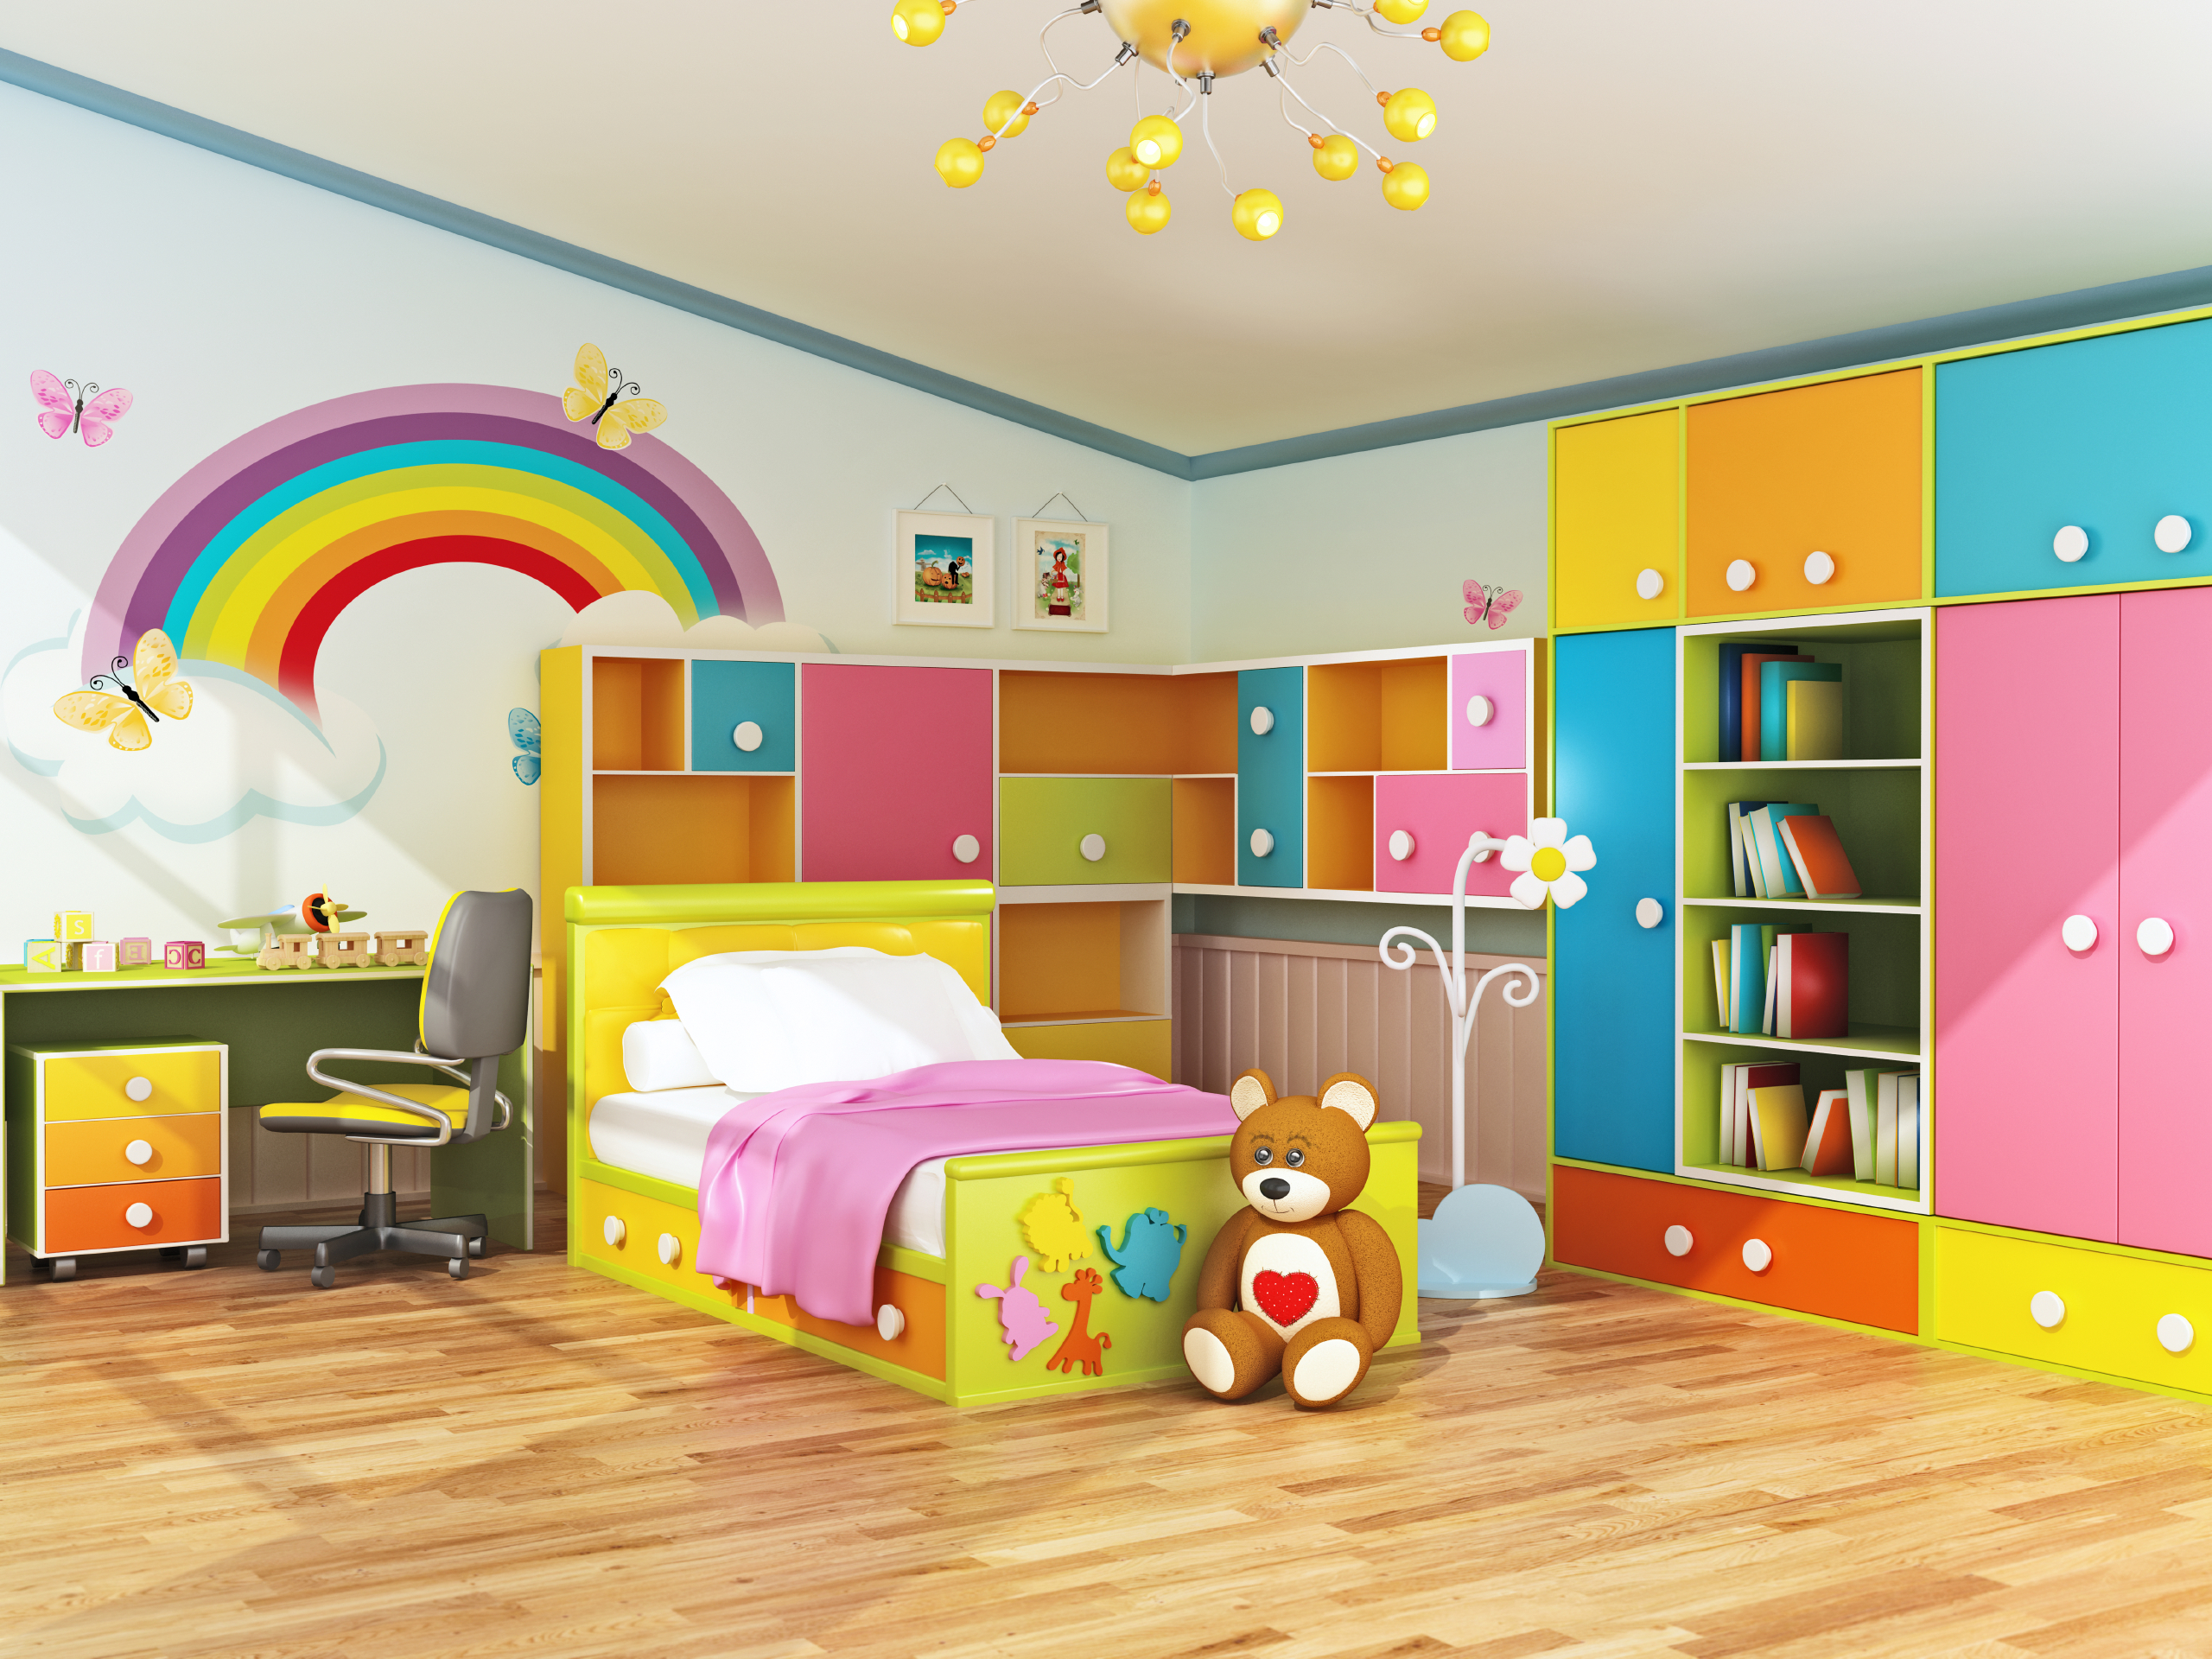 plan ahead when decorating kids 39 bedrooms rismedia 39 s. Black Bedroom Furniture Sets. Home Design Ideas